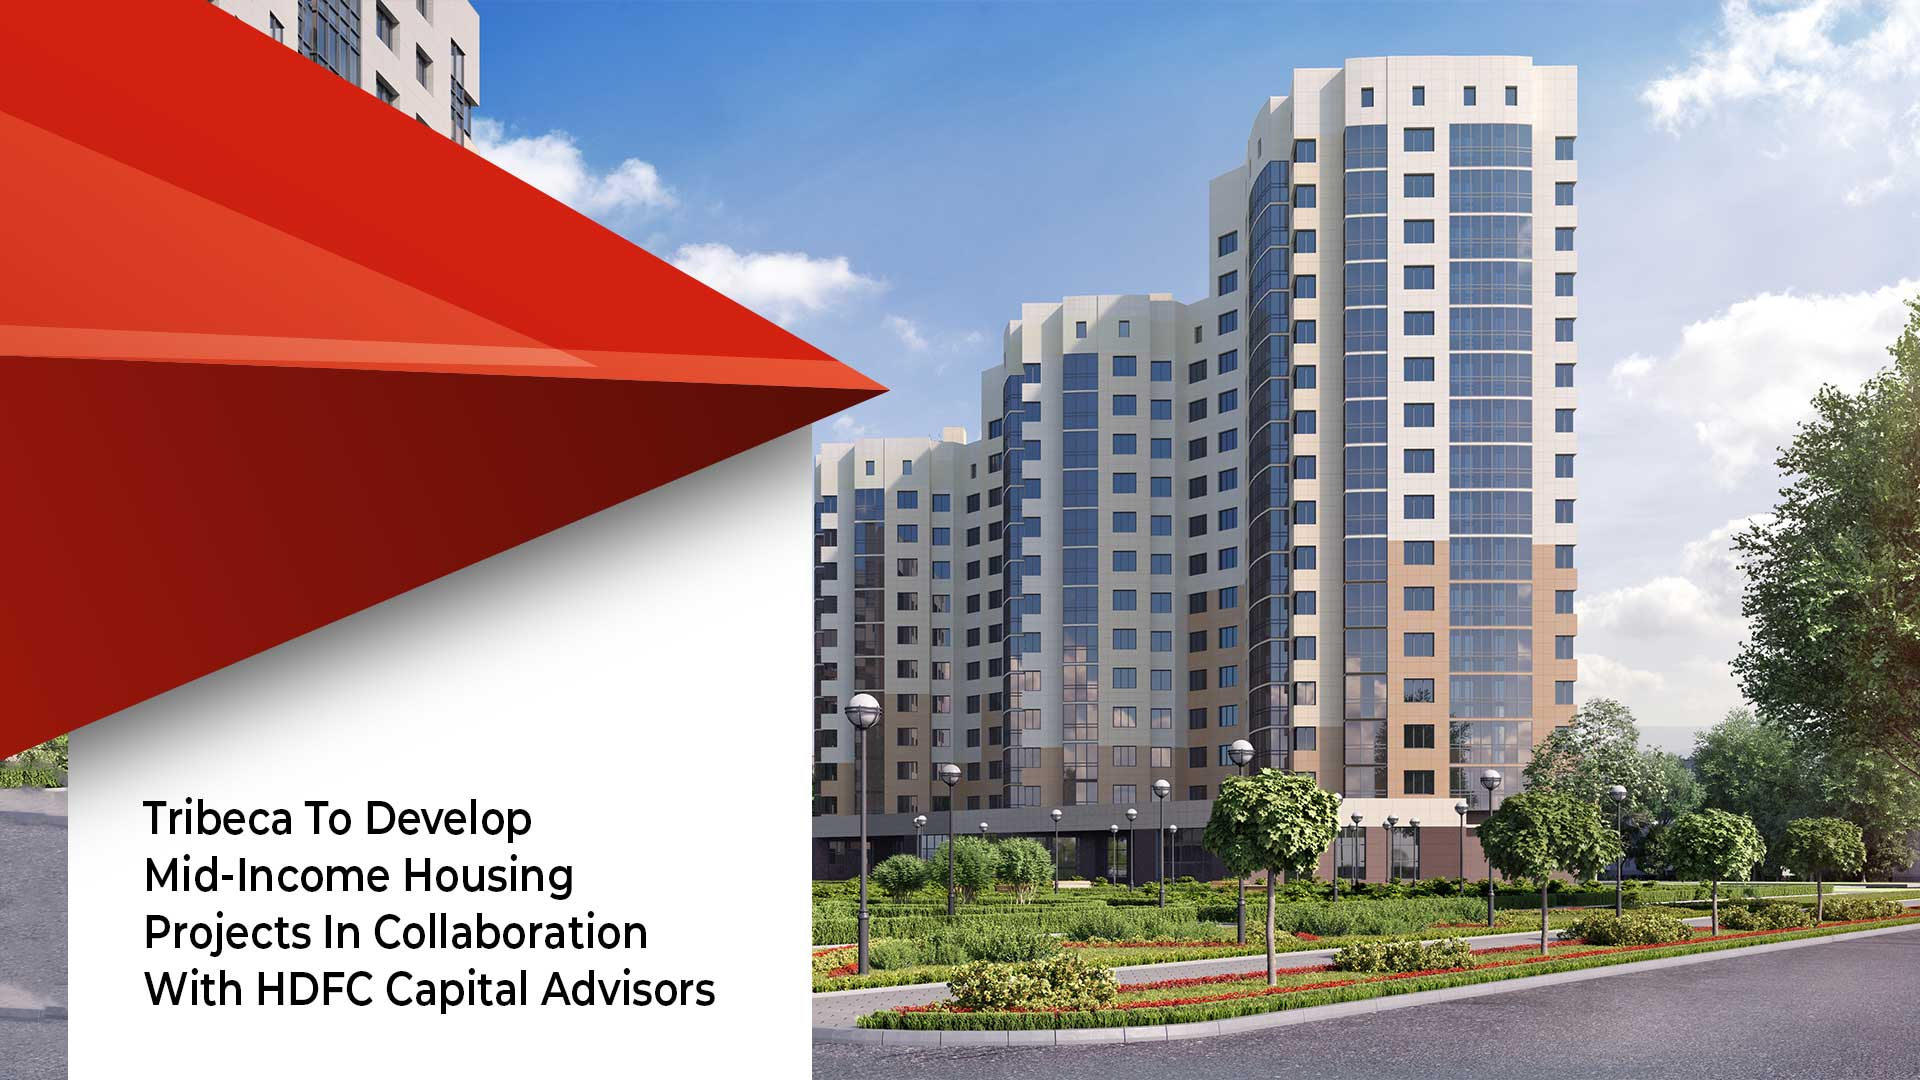 HDFC Capital Advisors And Tribeca Develop Housing Projects